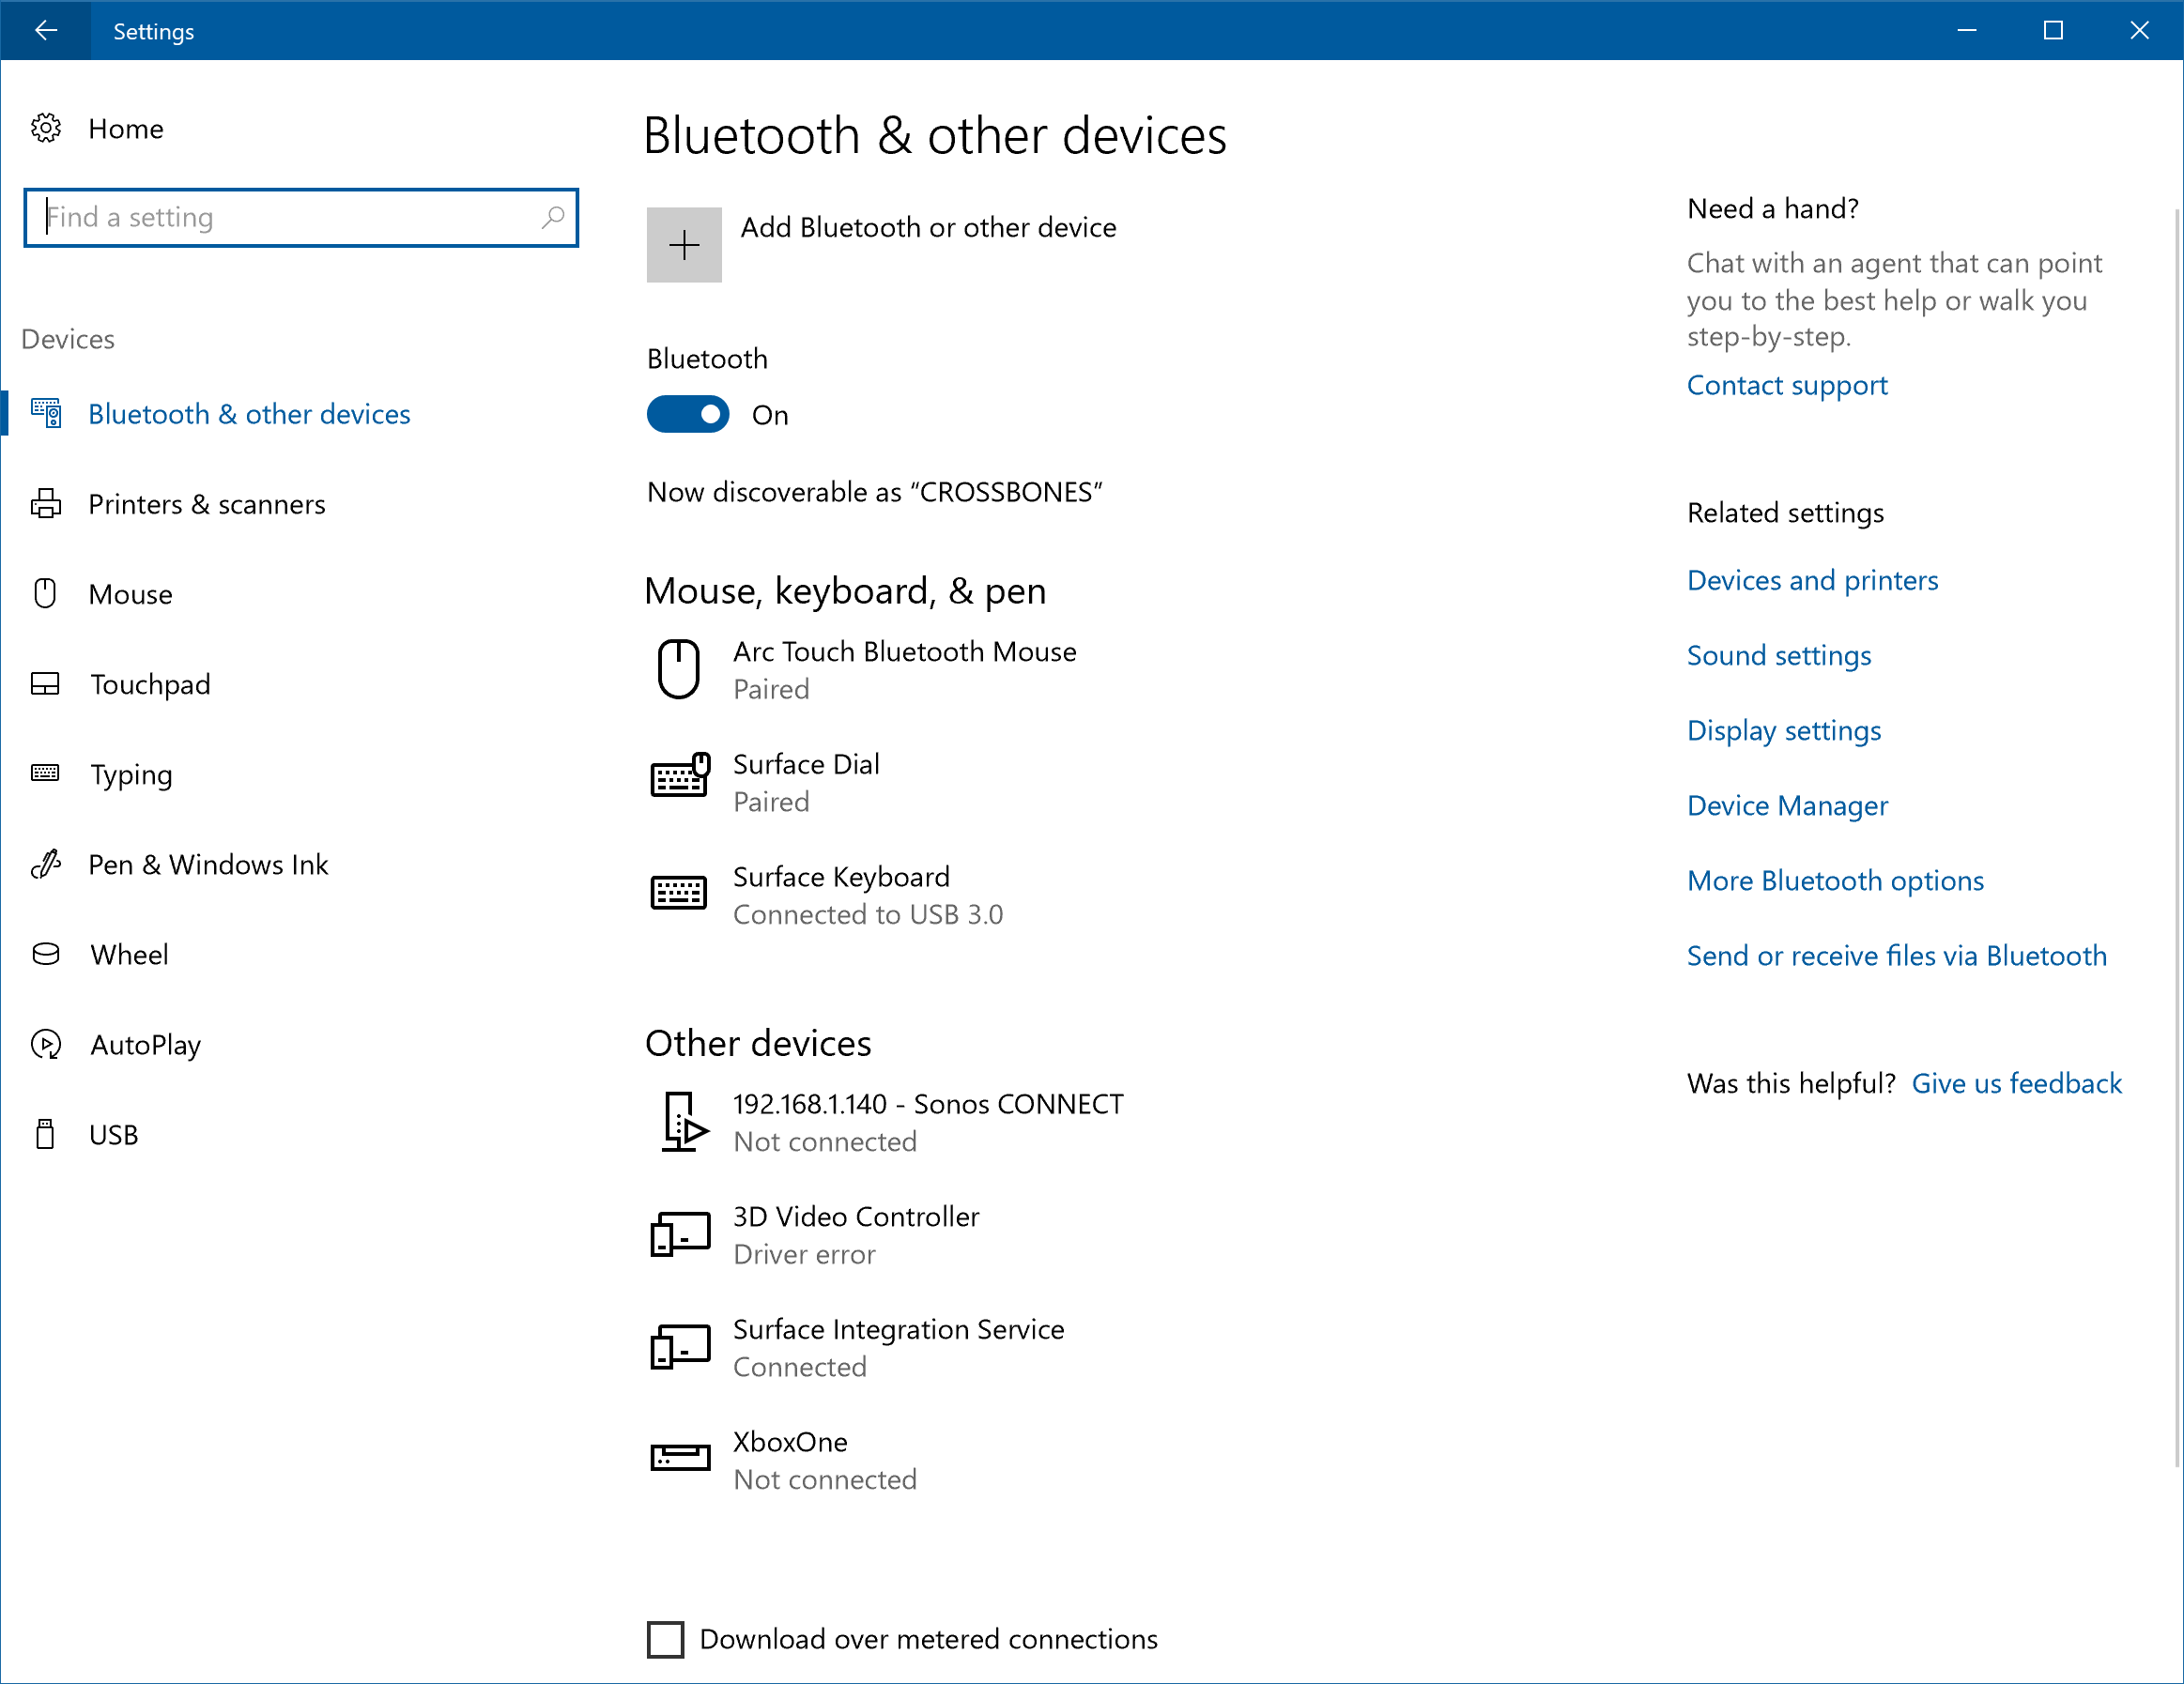 Bluetooth & other devices settings